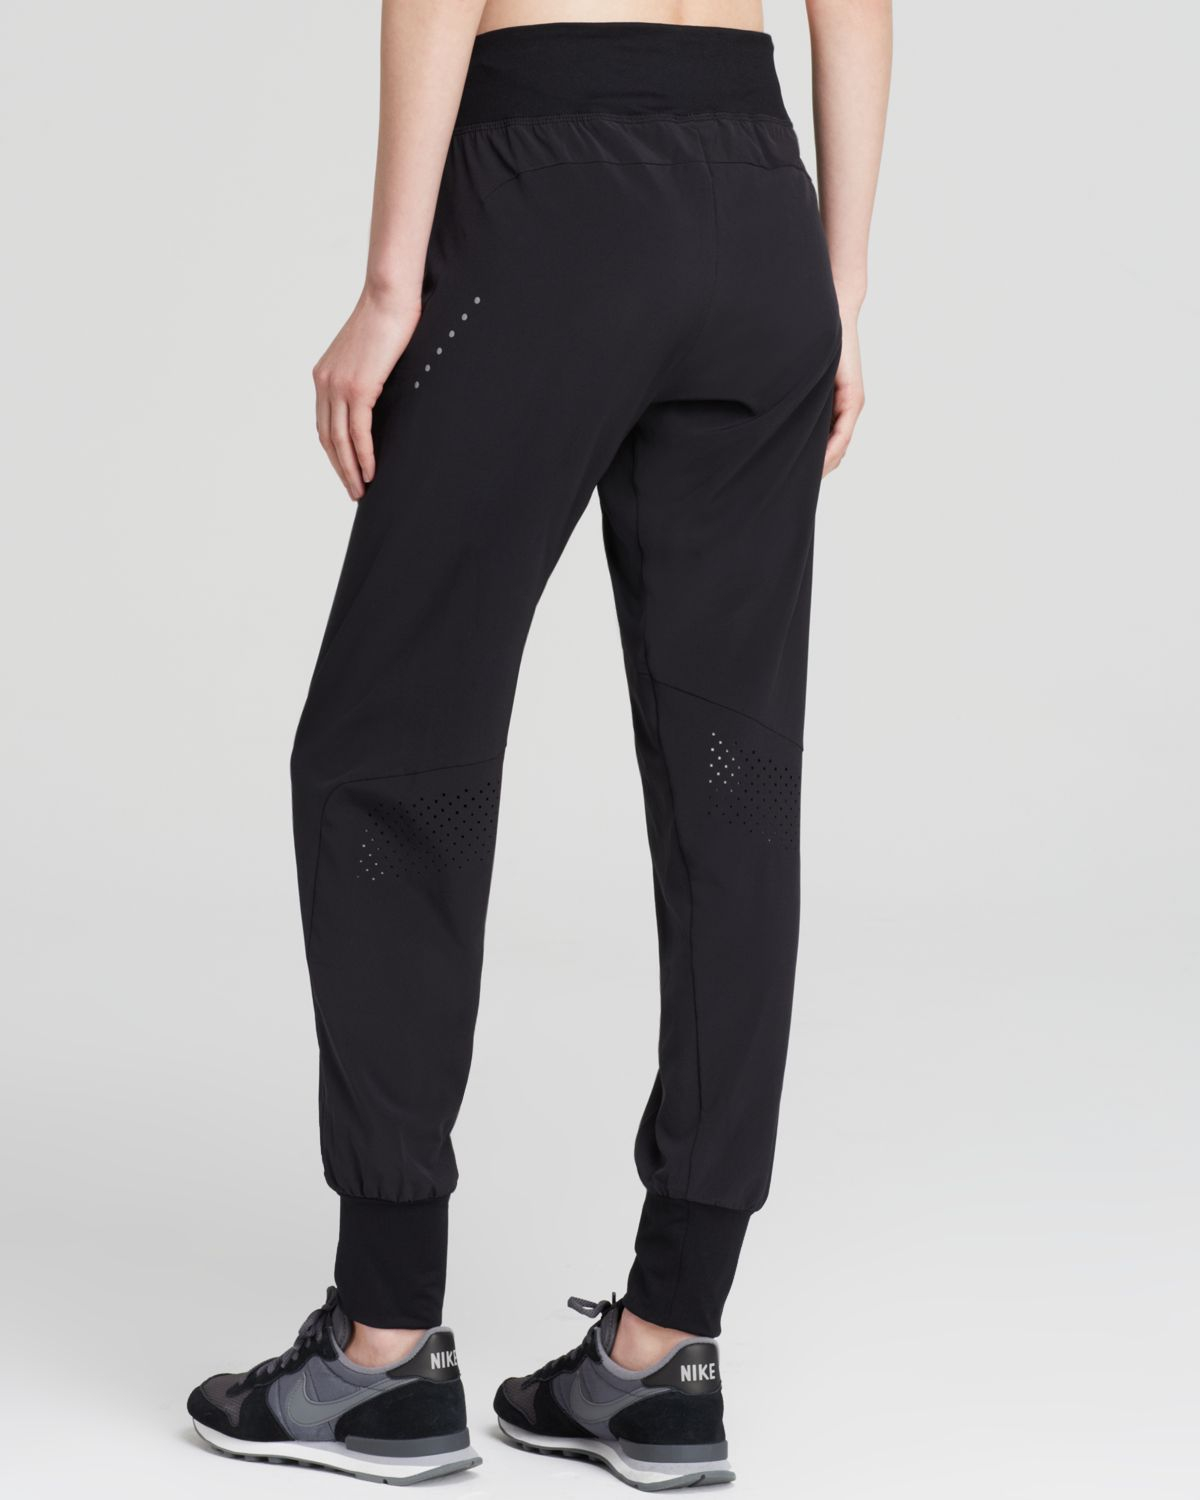 Original Find This Pin And More On Work It UA Heatgear Touch Capri Pants In Carbon Heather LUHHUHUV This Color Im A